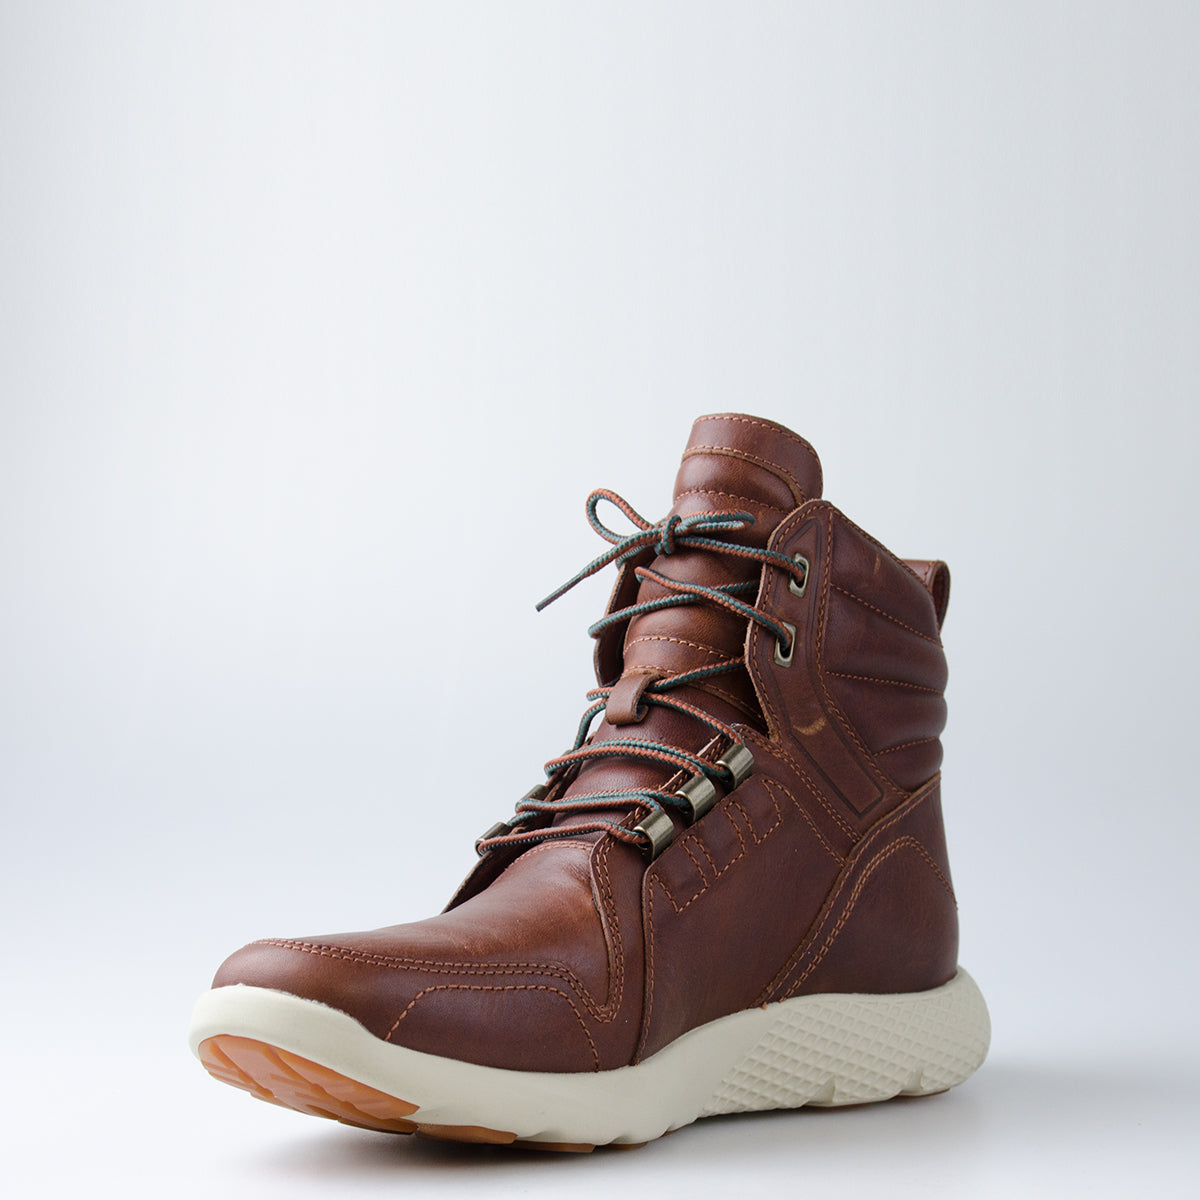 a33a8303ceda Men s Timberland Limited Release FlyRoam Leather Boots Sundance Brown. 1